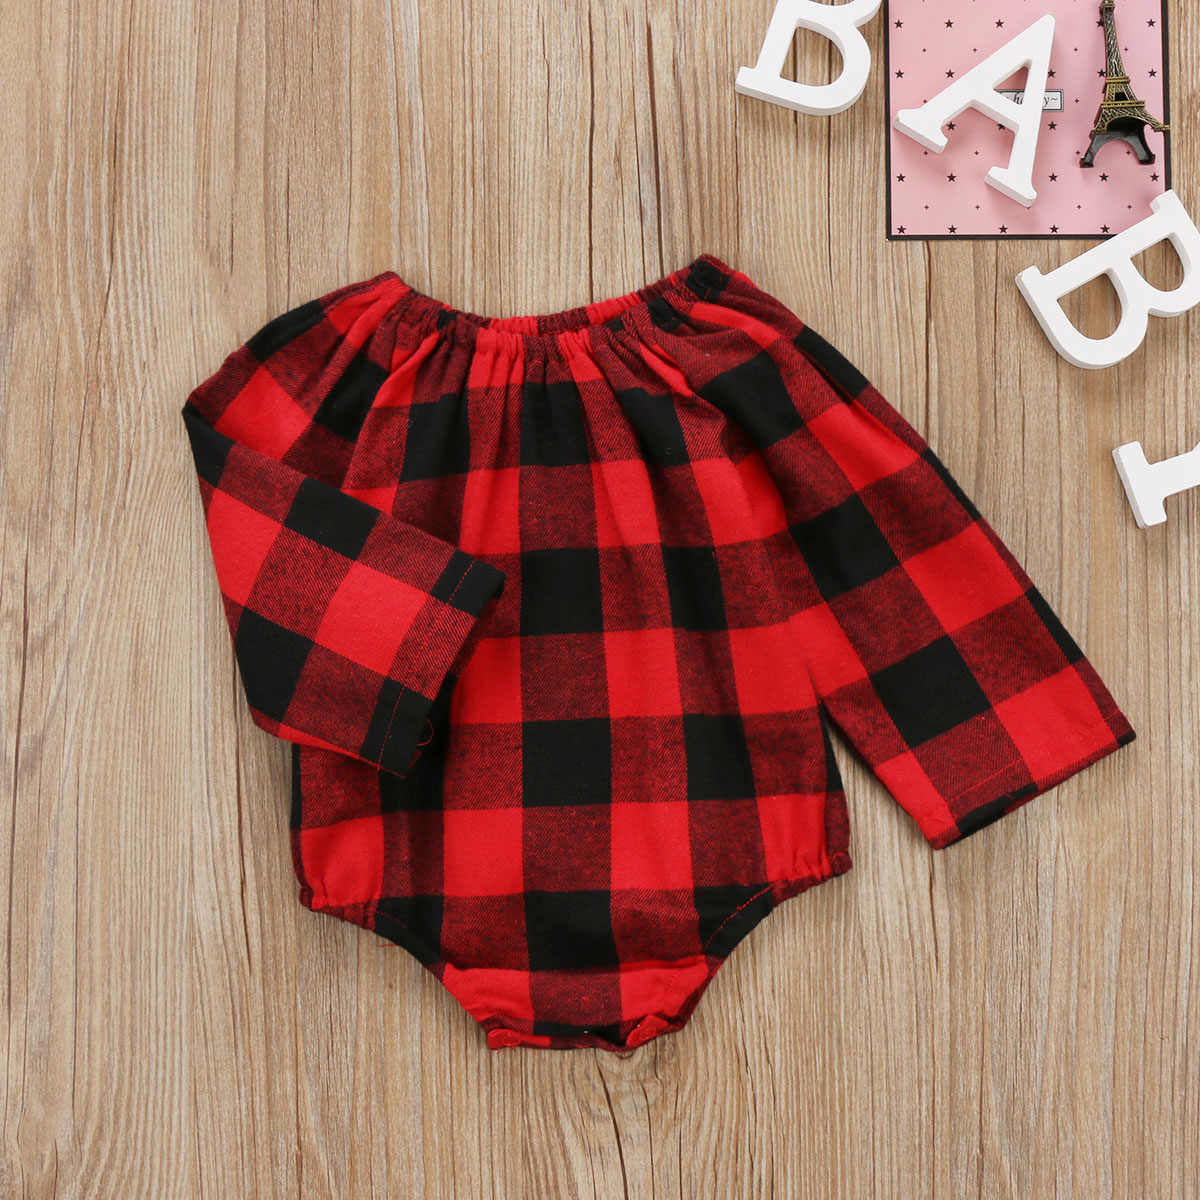 b3849d40d ... Christmas Autumn Toddler Infant Baby Boys Girls Long Sleeve Romper Red  Plaid Jumpsuit Clothes Outfits 0 ...